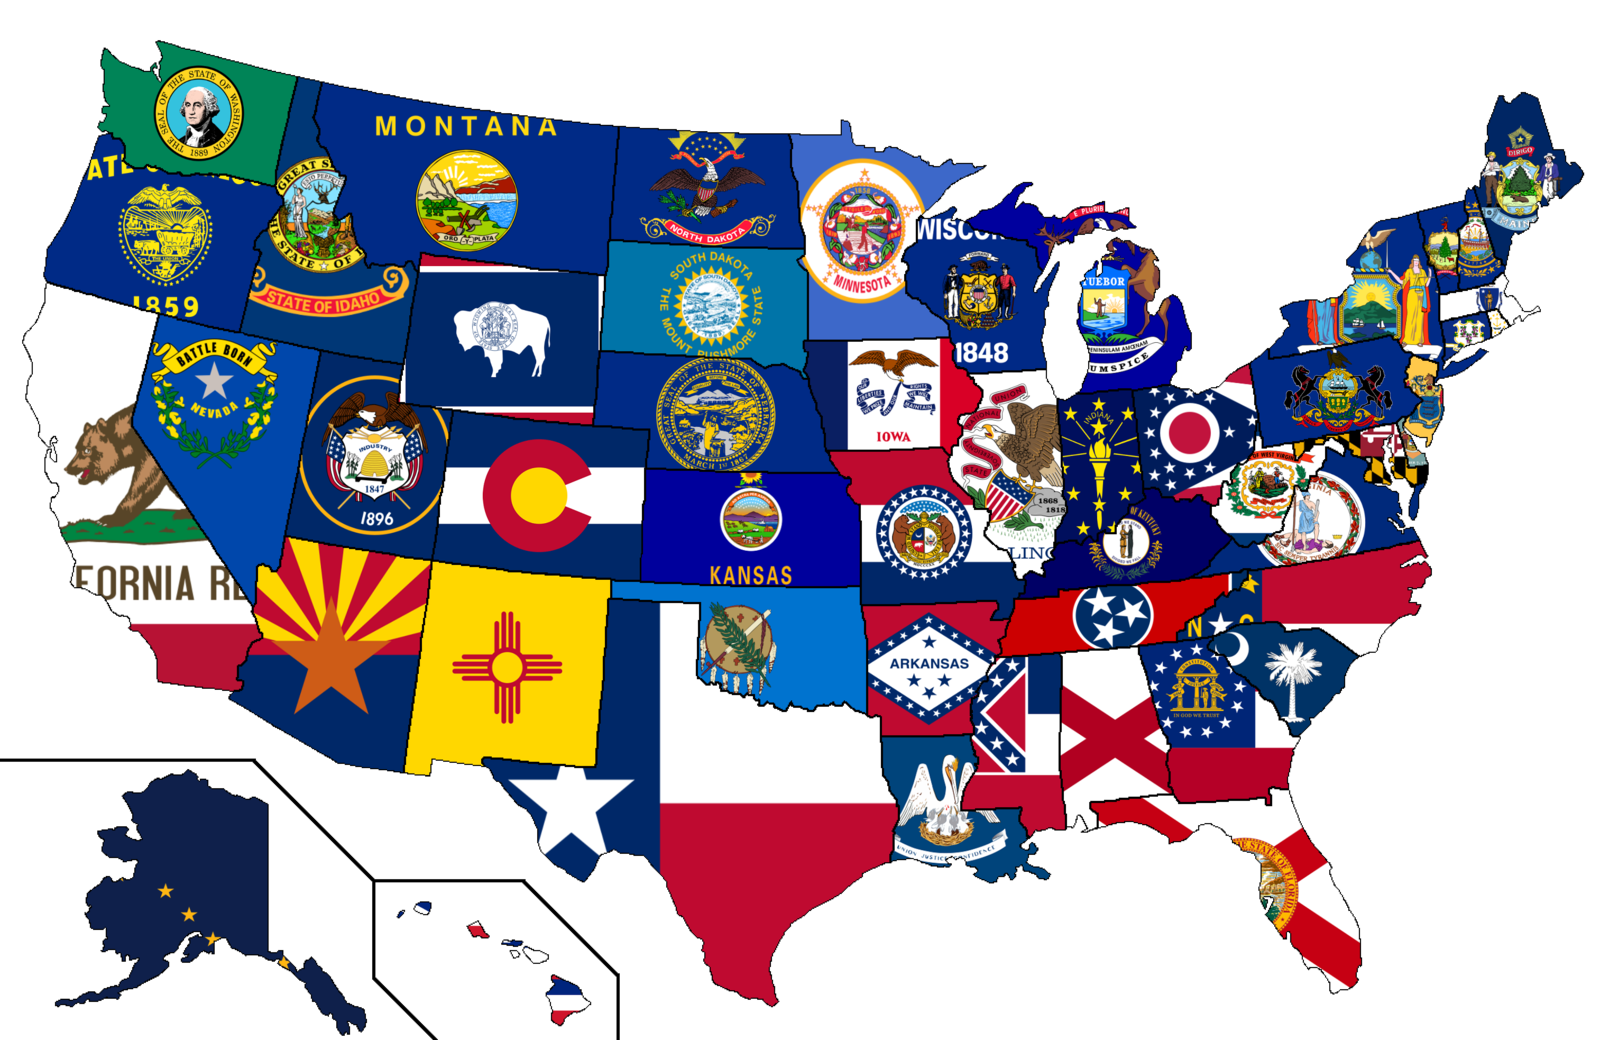 Colours of the US states flags blended into one colour [1513x983 1600x1040